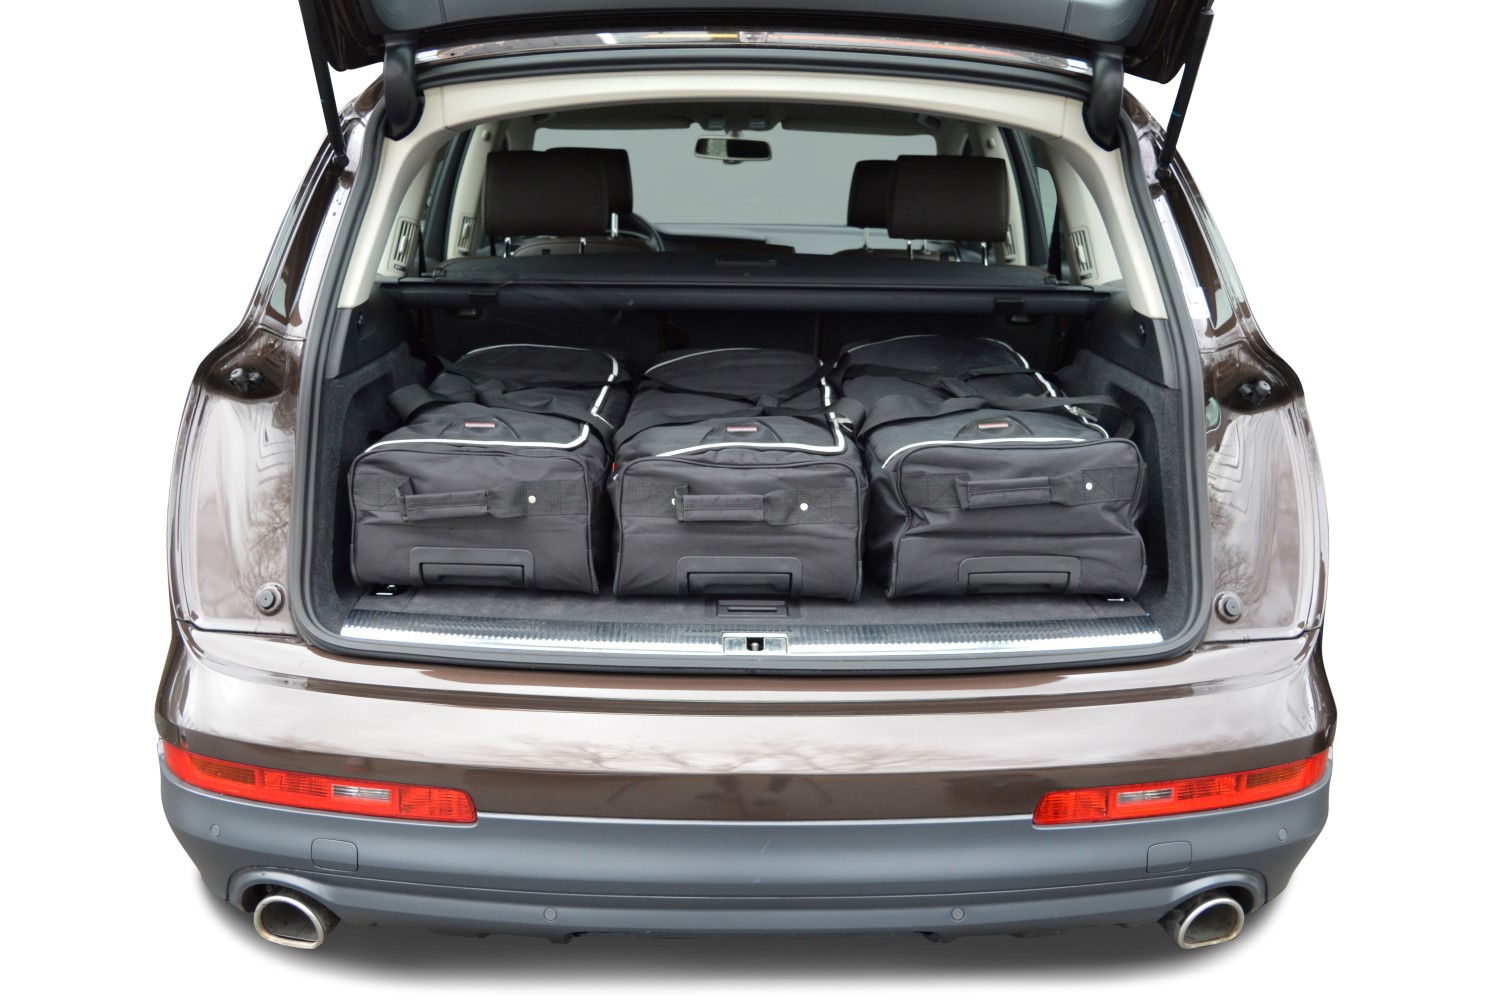 Audi Q L Car Travel Bags CarBagscom - Audi q7